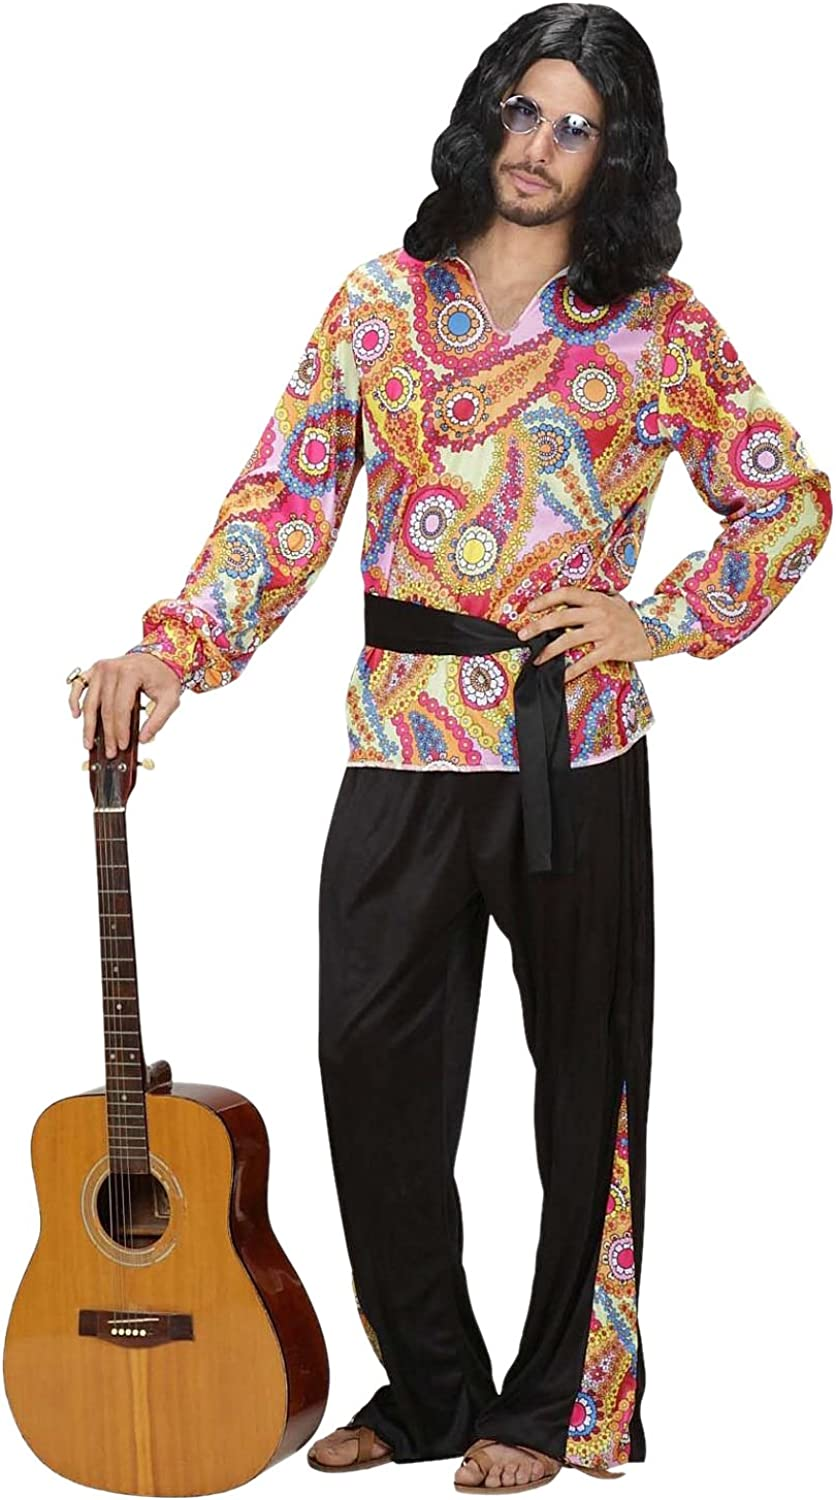 Hippie Dude Costume Extra Large for 60s 70s Hippy Fancy Dress